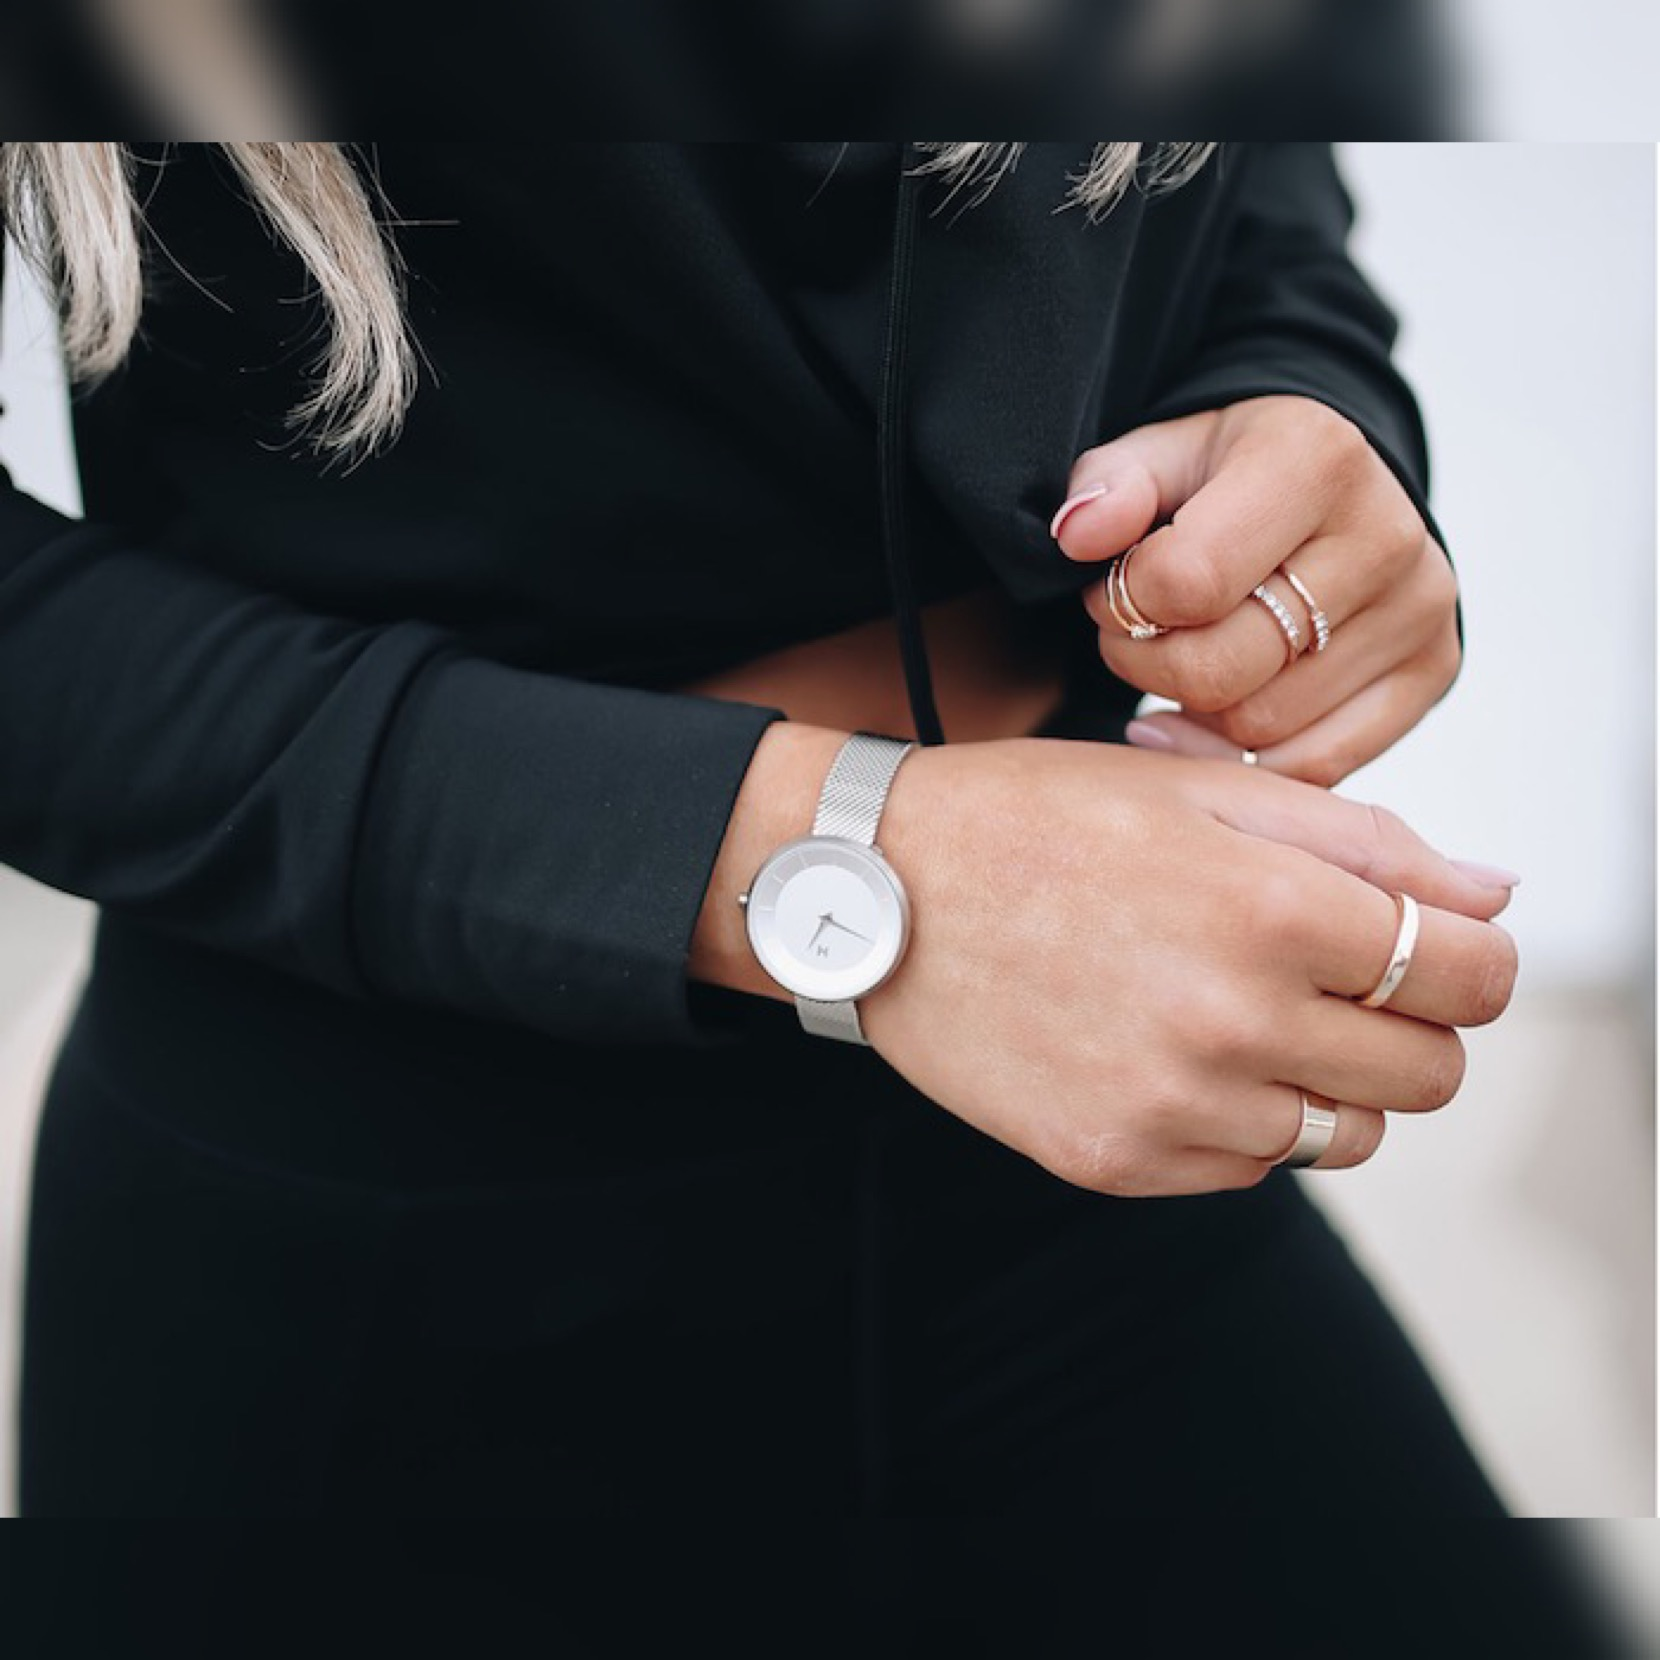 MVMT S1 MOD 32MM Watch by Coded PR for use by 360 Magazine